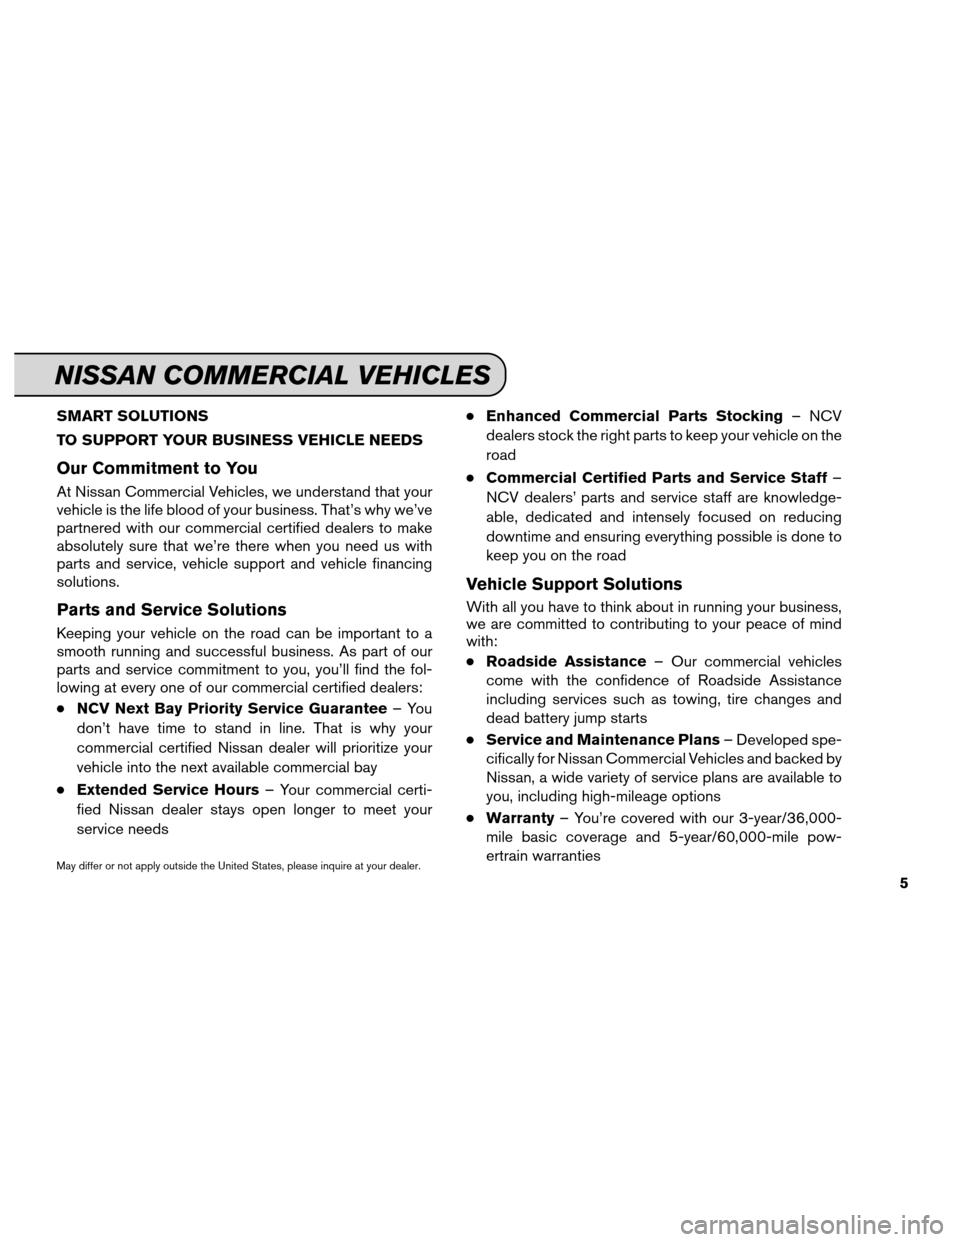 NISSAN MURANO 2013 2.G Service And Maintenance Guide SMART SOLUTIONS TO SUPPORT YOUR BUSINESS VEHICLE NEEDS Our Commitment to You At Nissan Commercial Vehicles, we understand that your vehicle is the life blood of your business. That's why we've par